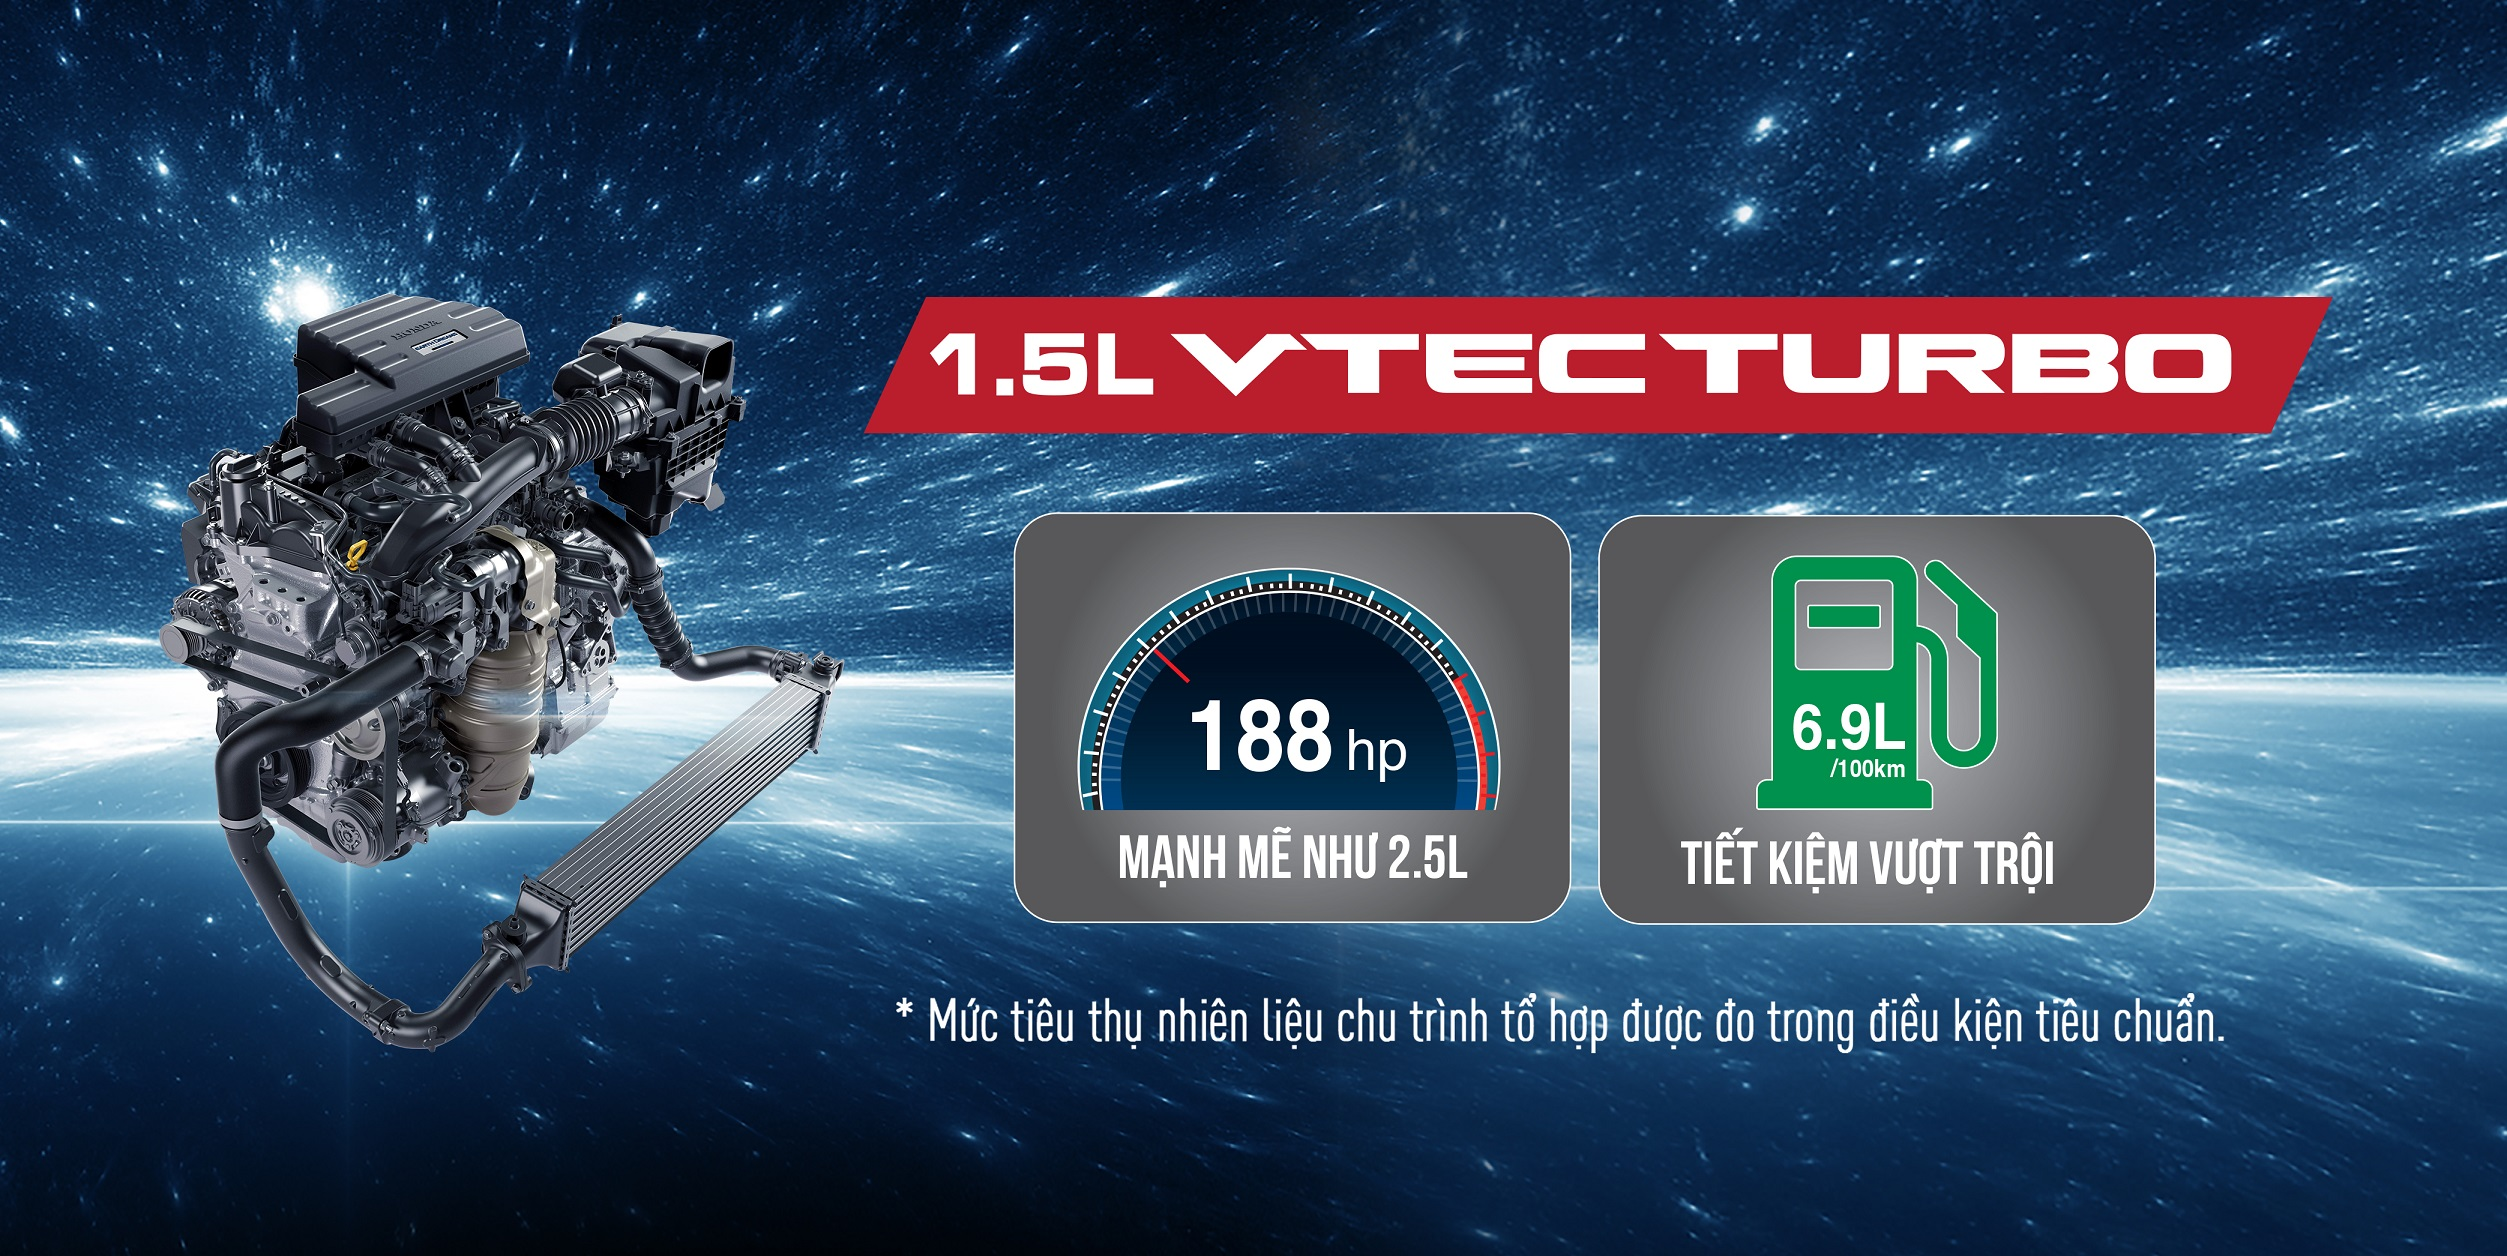 Dong co VTEC TURBO CR-V 2018